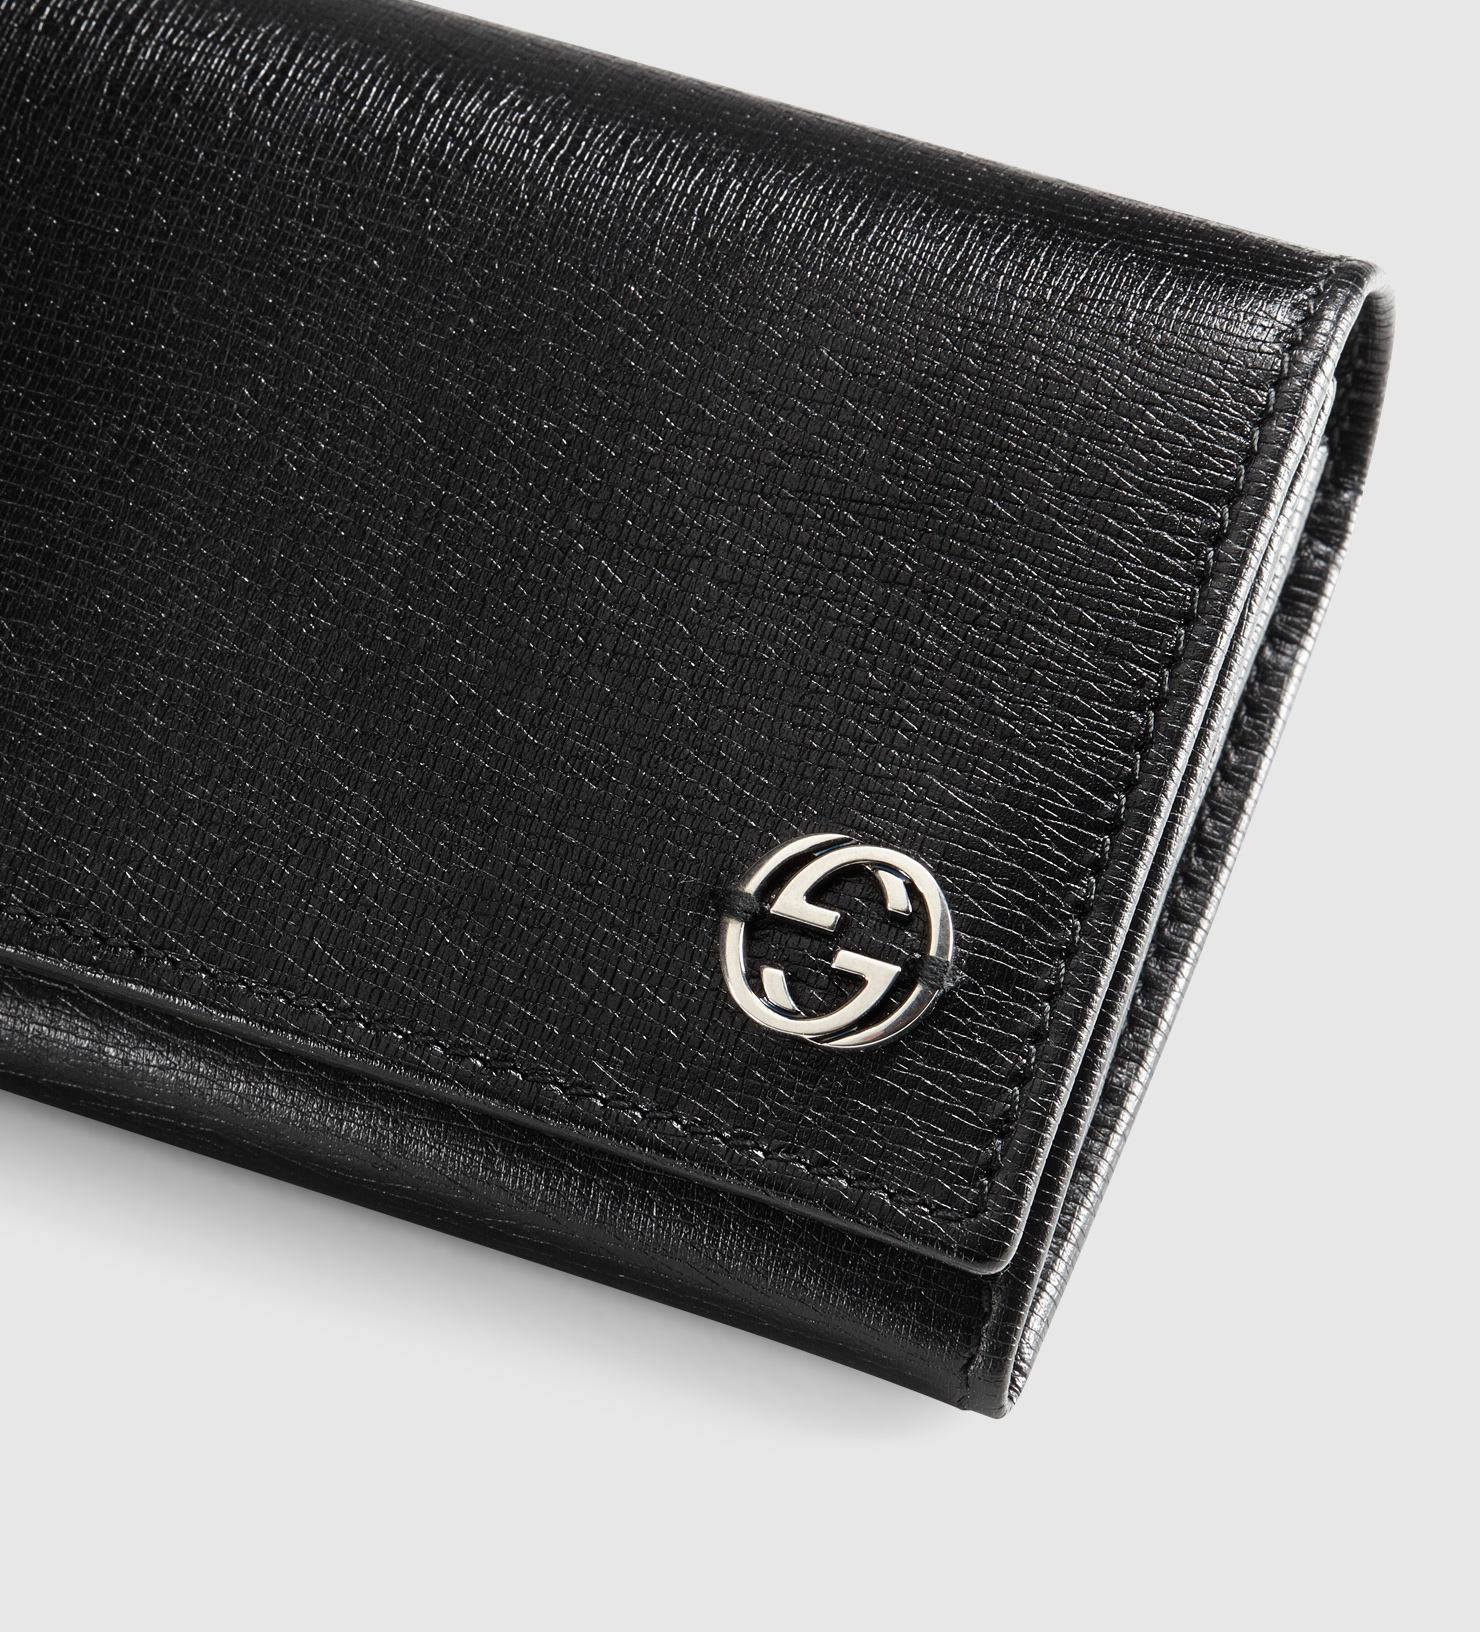 485f85bbdd9 Lyst - Gucci Leather Long Coin Wallet With Printed Interior in Black ...